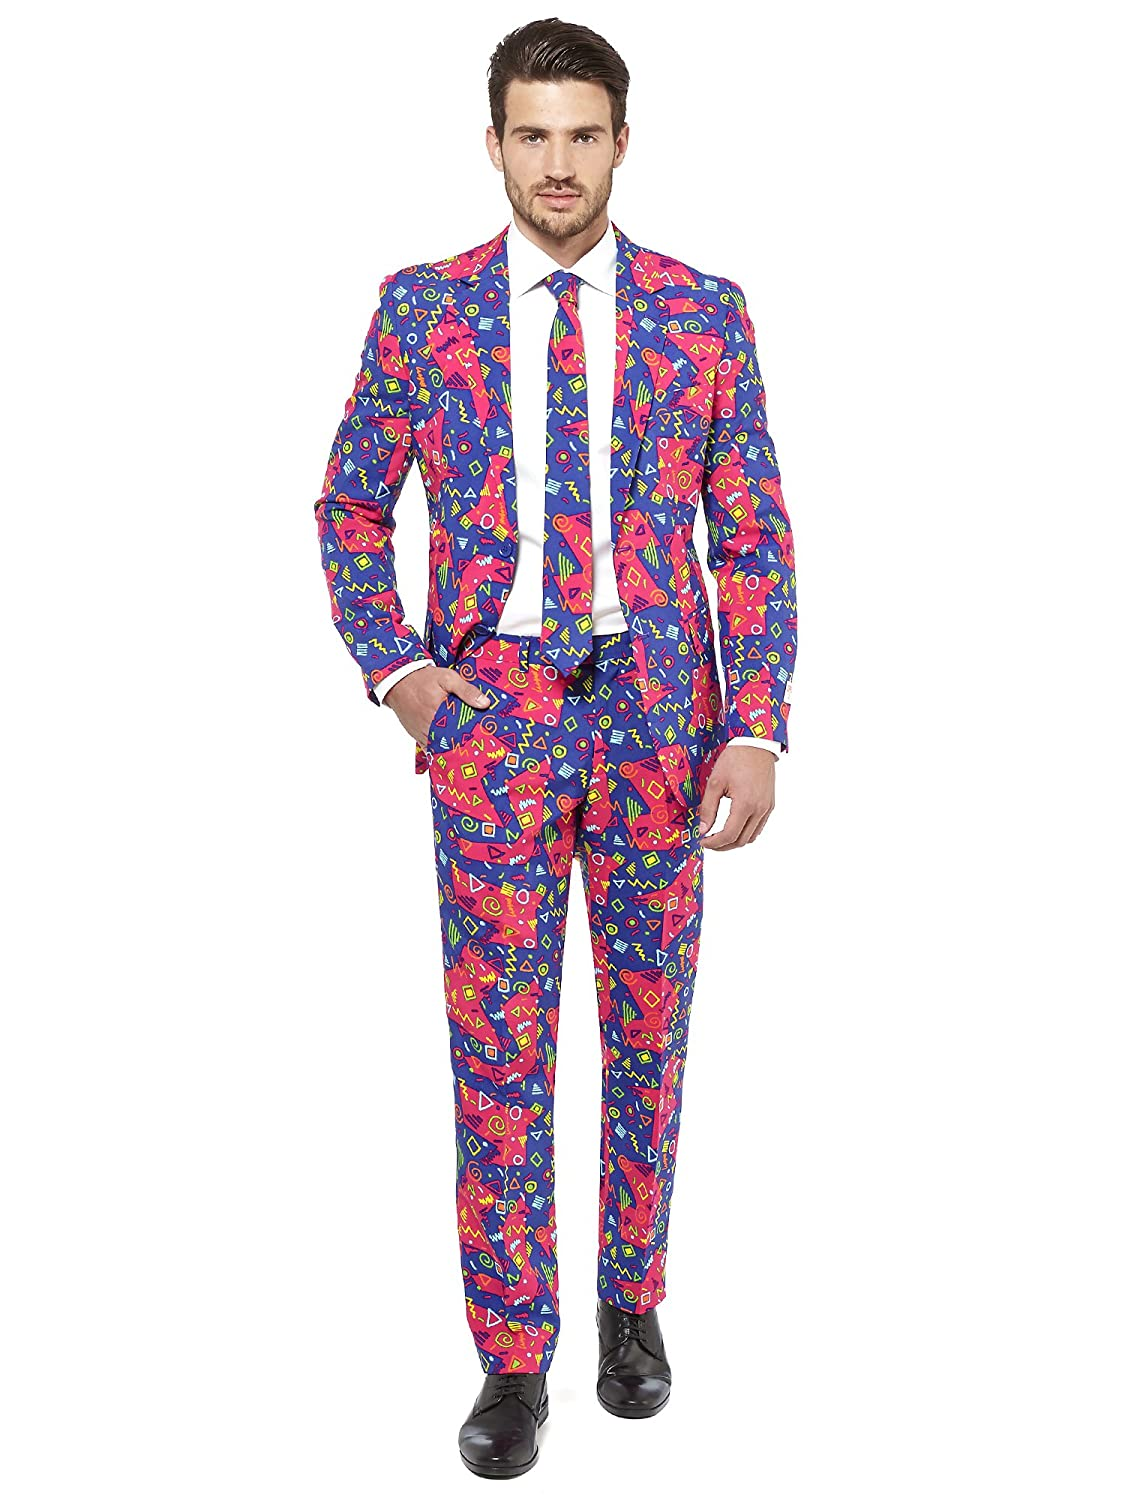 Opposuits The Fresh Prince Suit for Men Comes with Jacket, Pants and Tie in Funny Colorful Vintage 90s Print - 100% Money Back Guarantee: Amazon.co.uk: ...